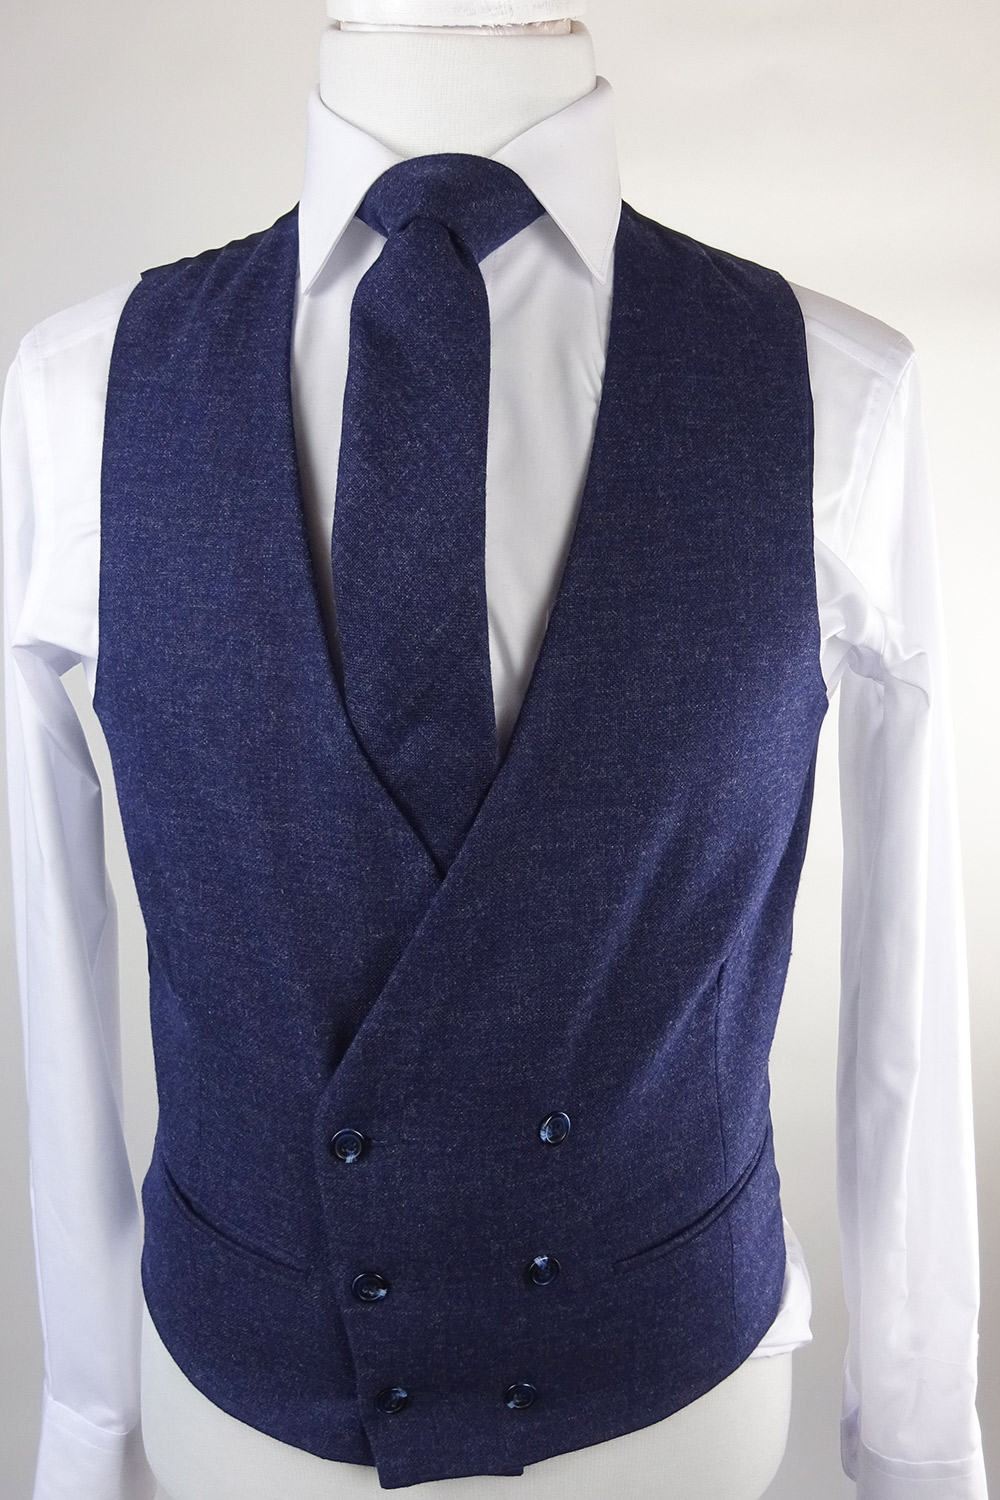 Midnight Lambswool Double breasted Waistcoat